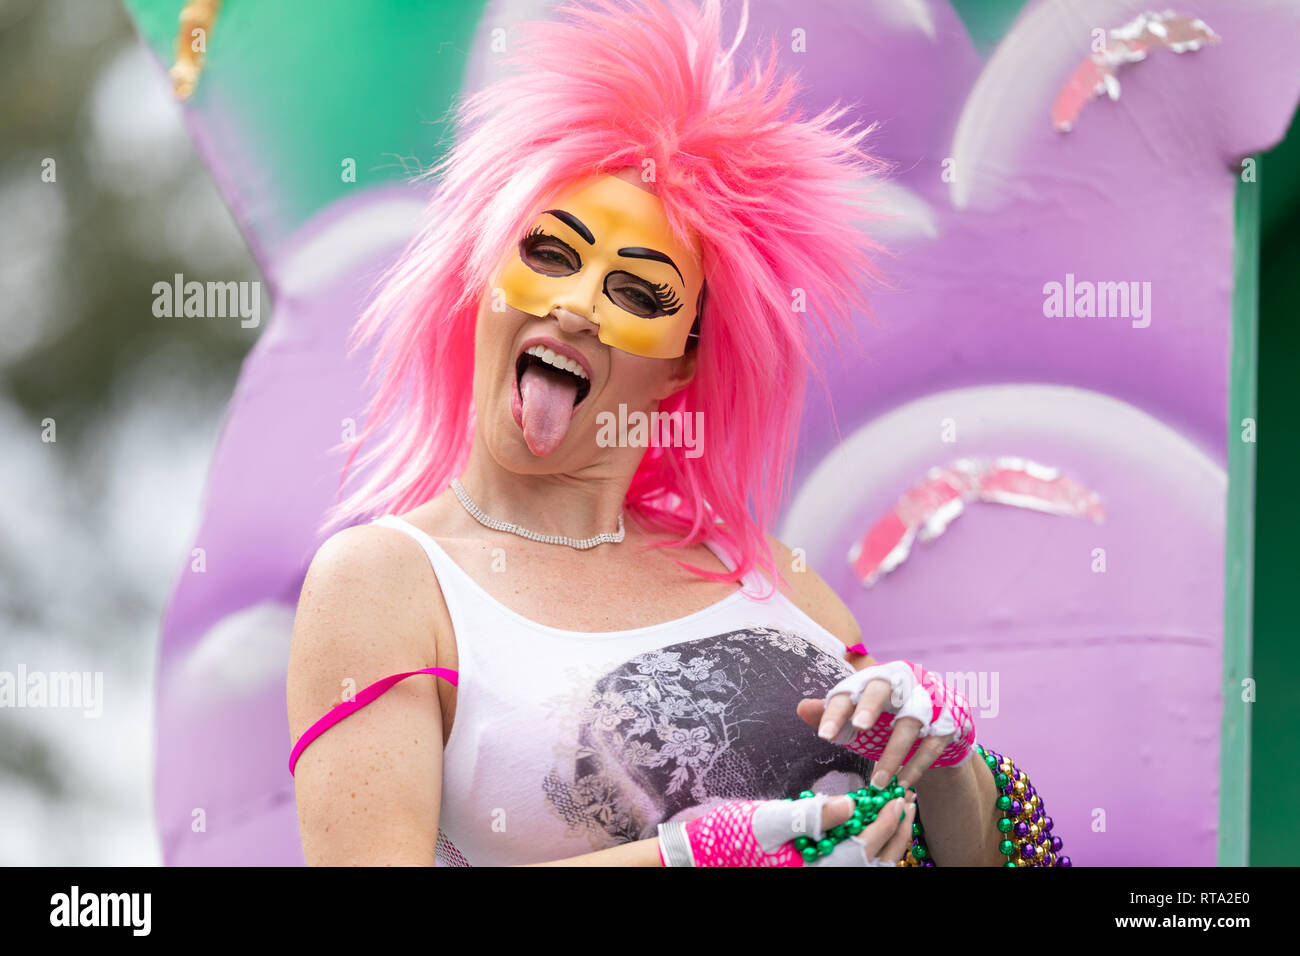 New Orleans, Louisiana, USA - February 23, 2019: Mardi Gras Parade, Woman wearing a pink wig and a face mask, showing her tongue and holding beads nec - Stock Image